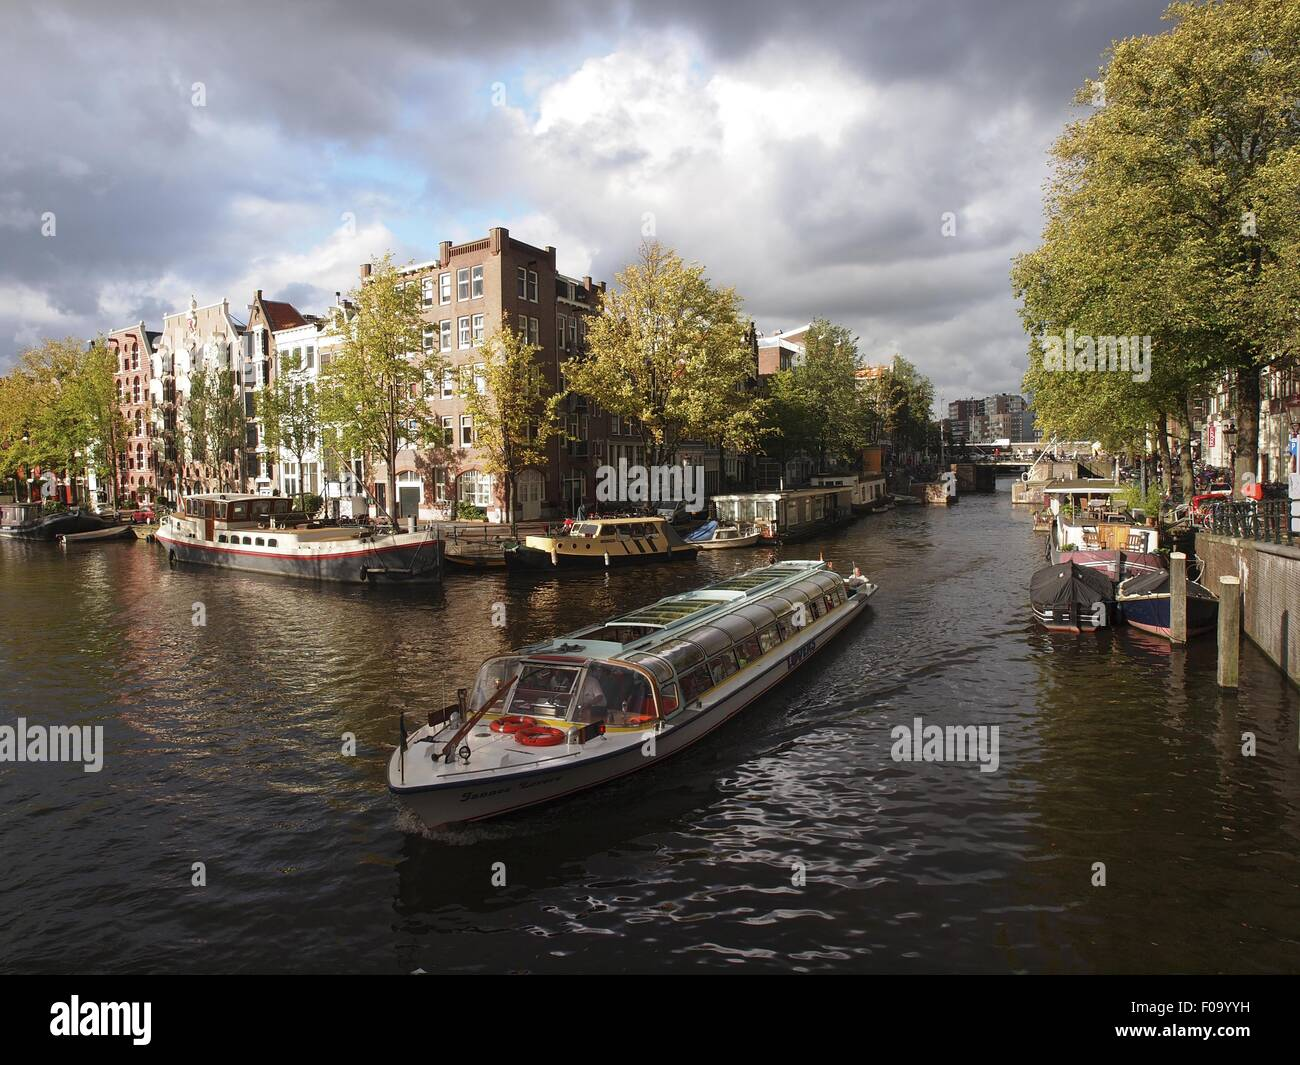 Ferryboats at canal with canal houses in background, Amsterdam, Netherlands - Stock Image